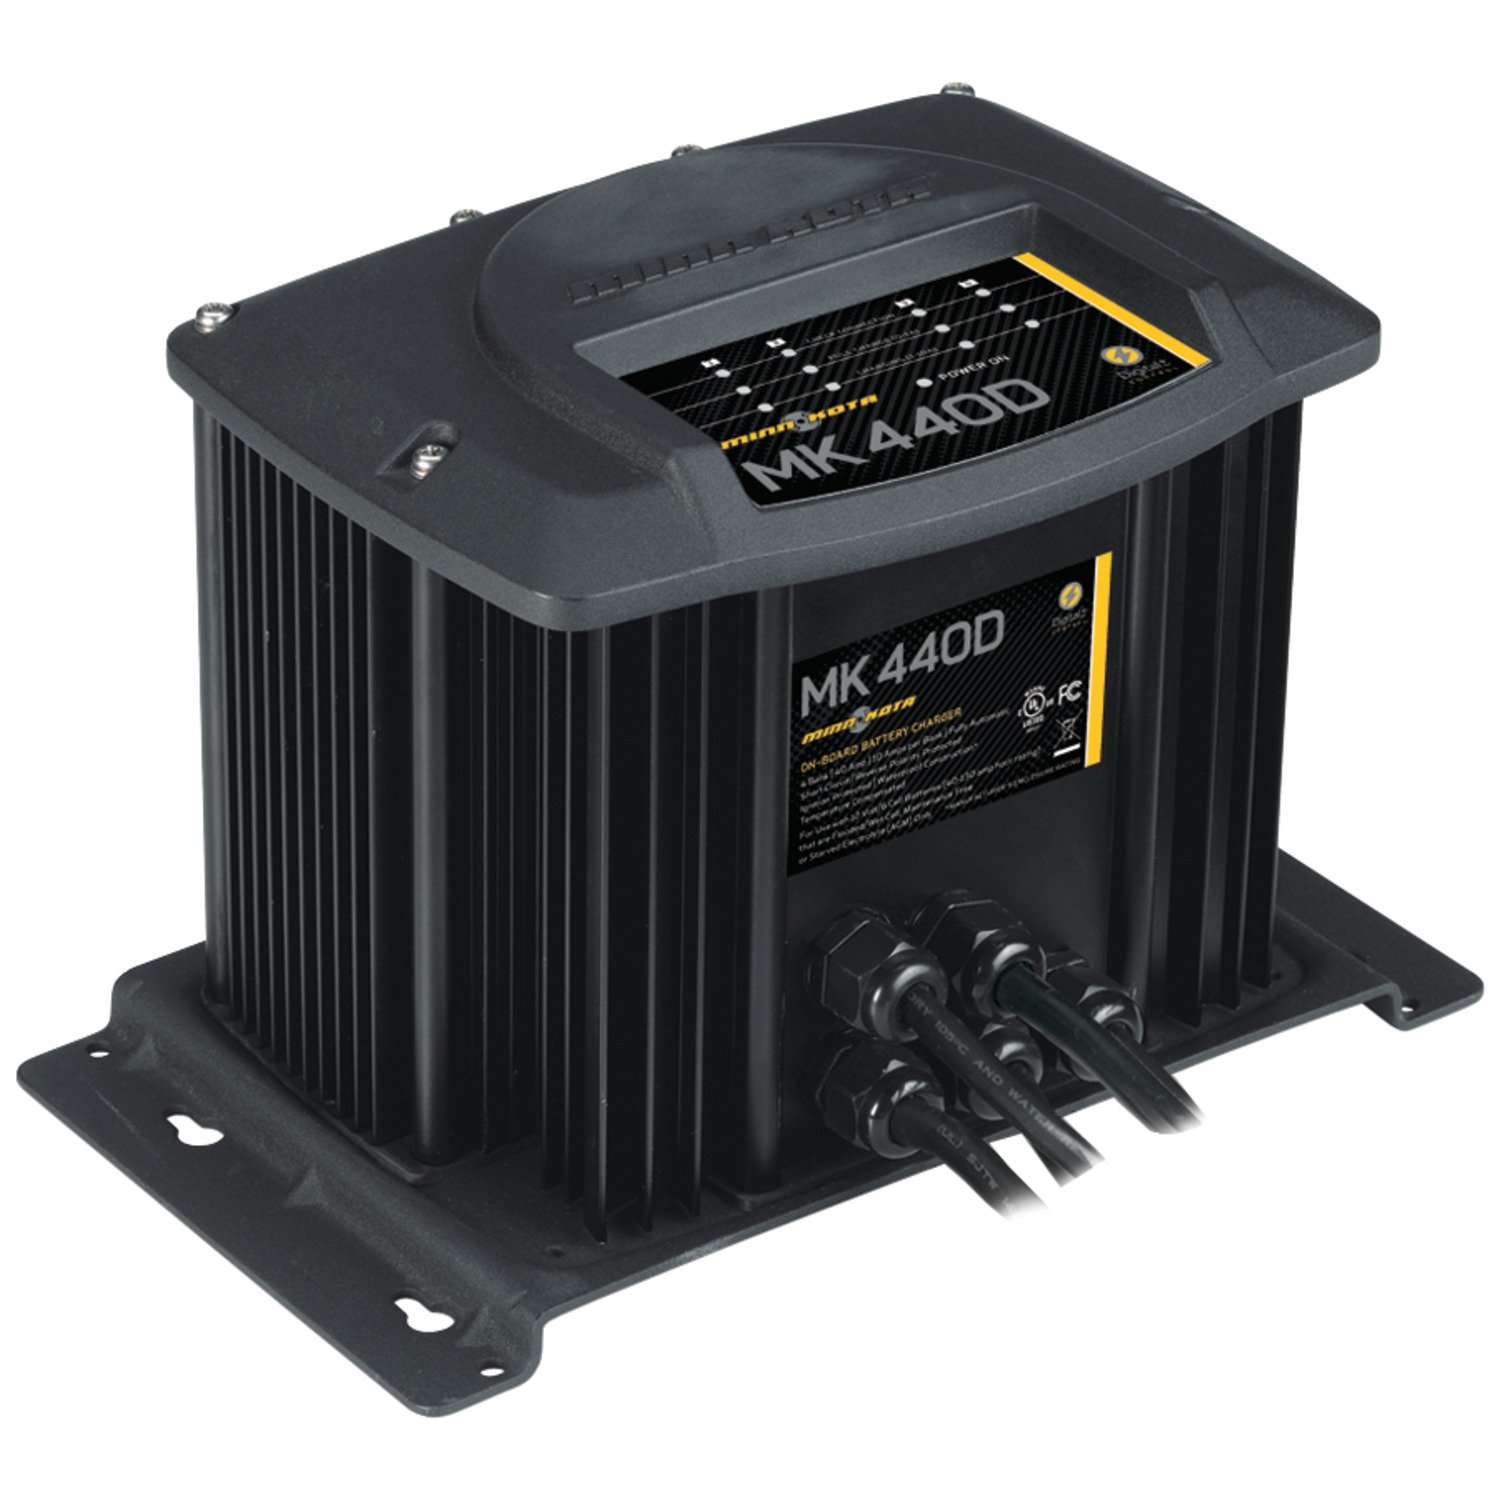 719PPPPmZGL._SL1500_ amazon com minnkota mk 440d on board battery charger (4 banks minn kota 3 bank charger wiring diagram at aneh.co